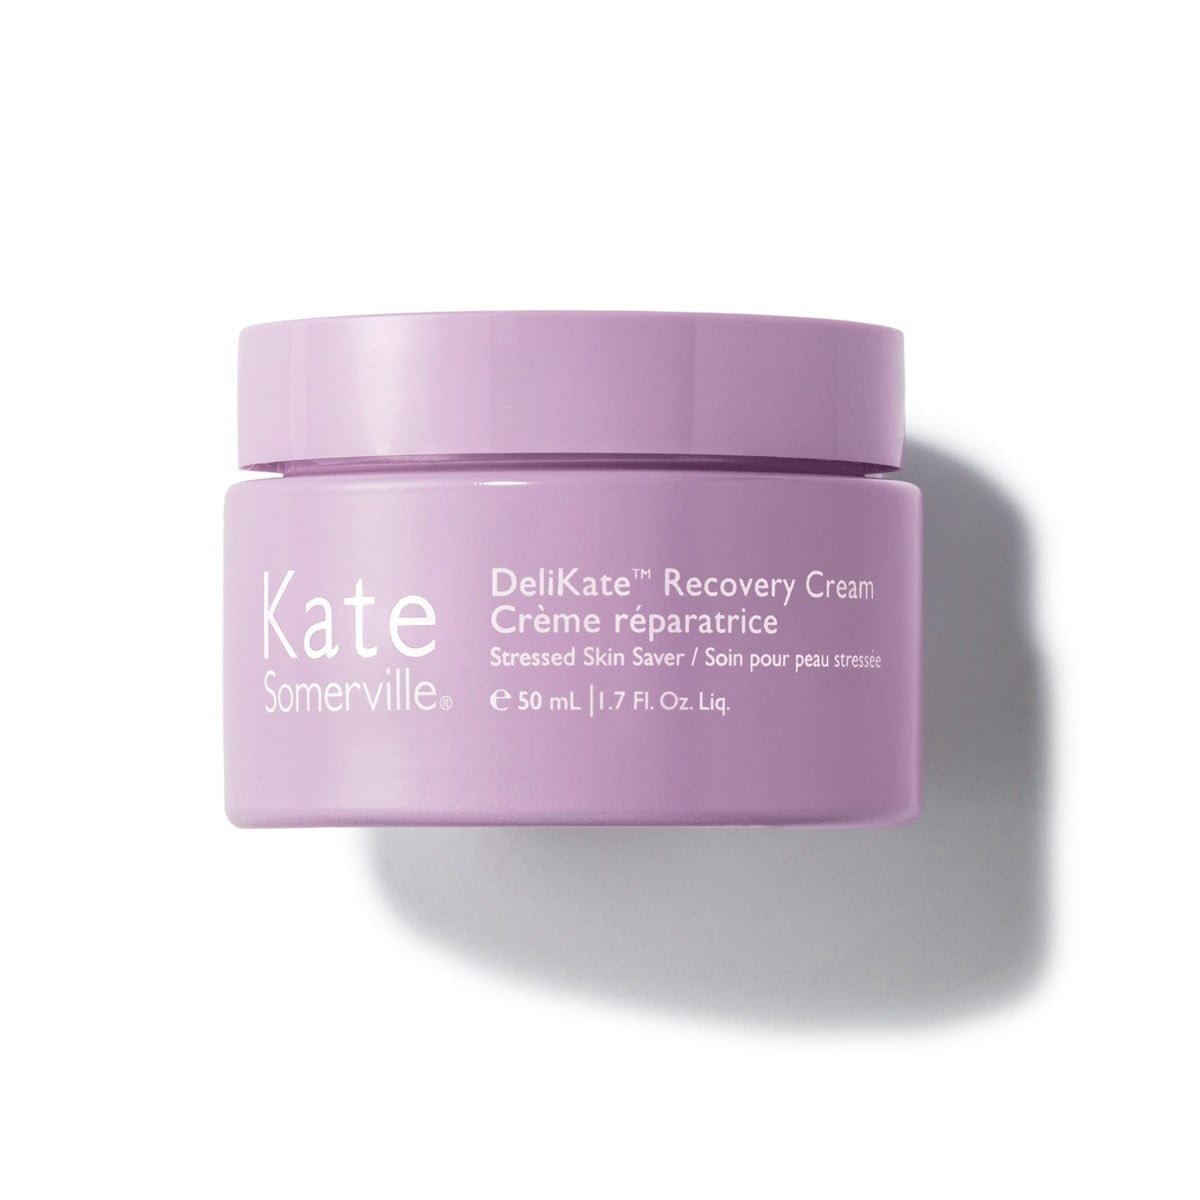 DeliKate Recovery Cream by kate somerville #5